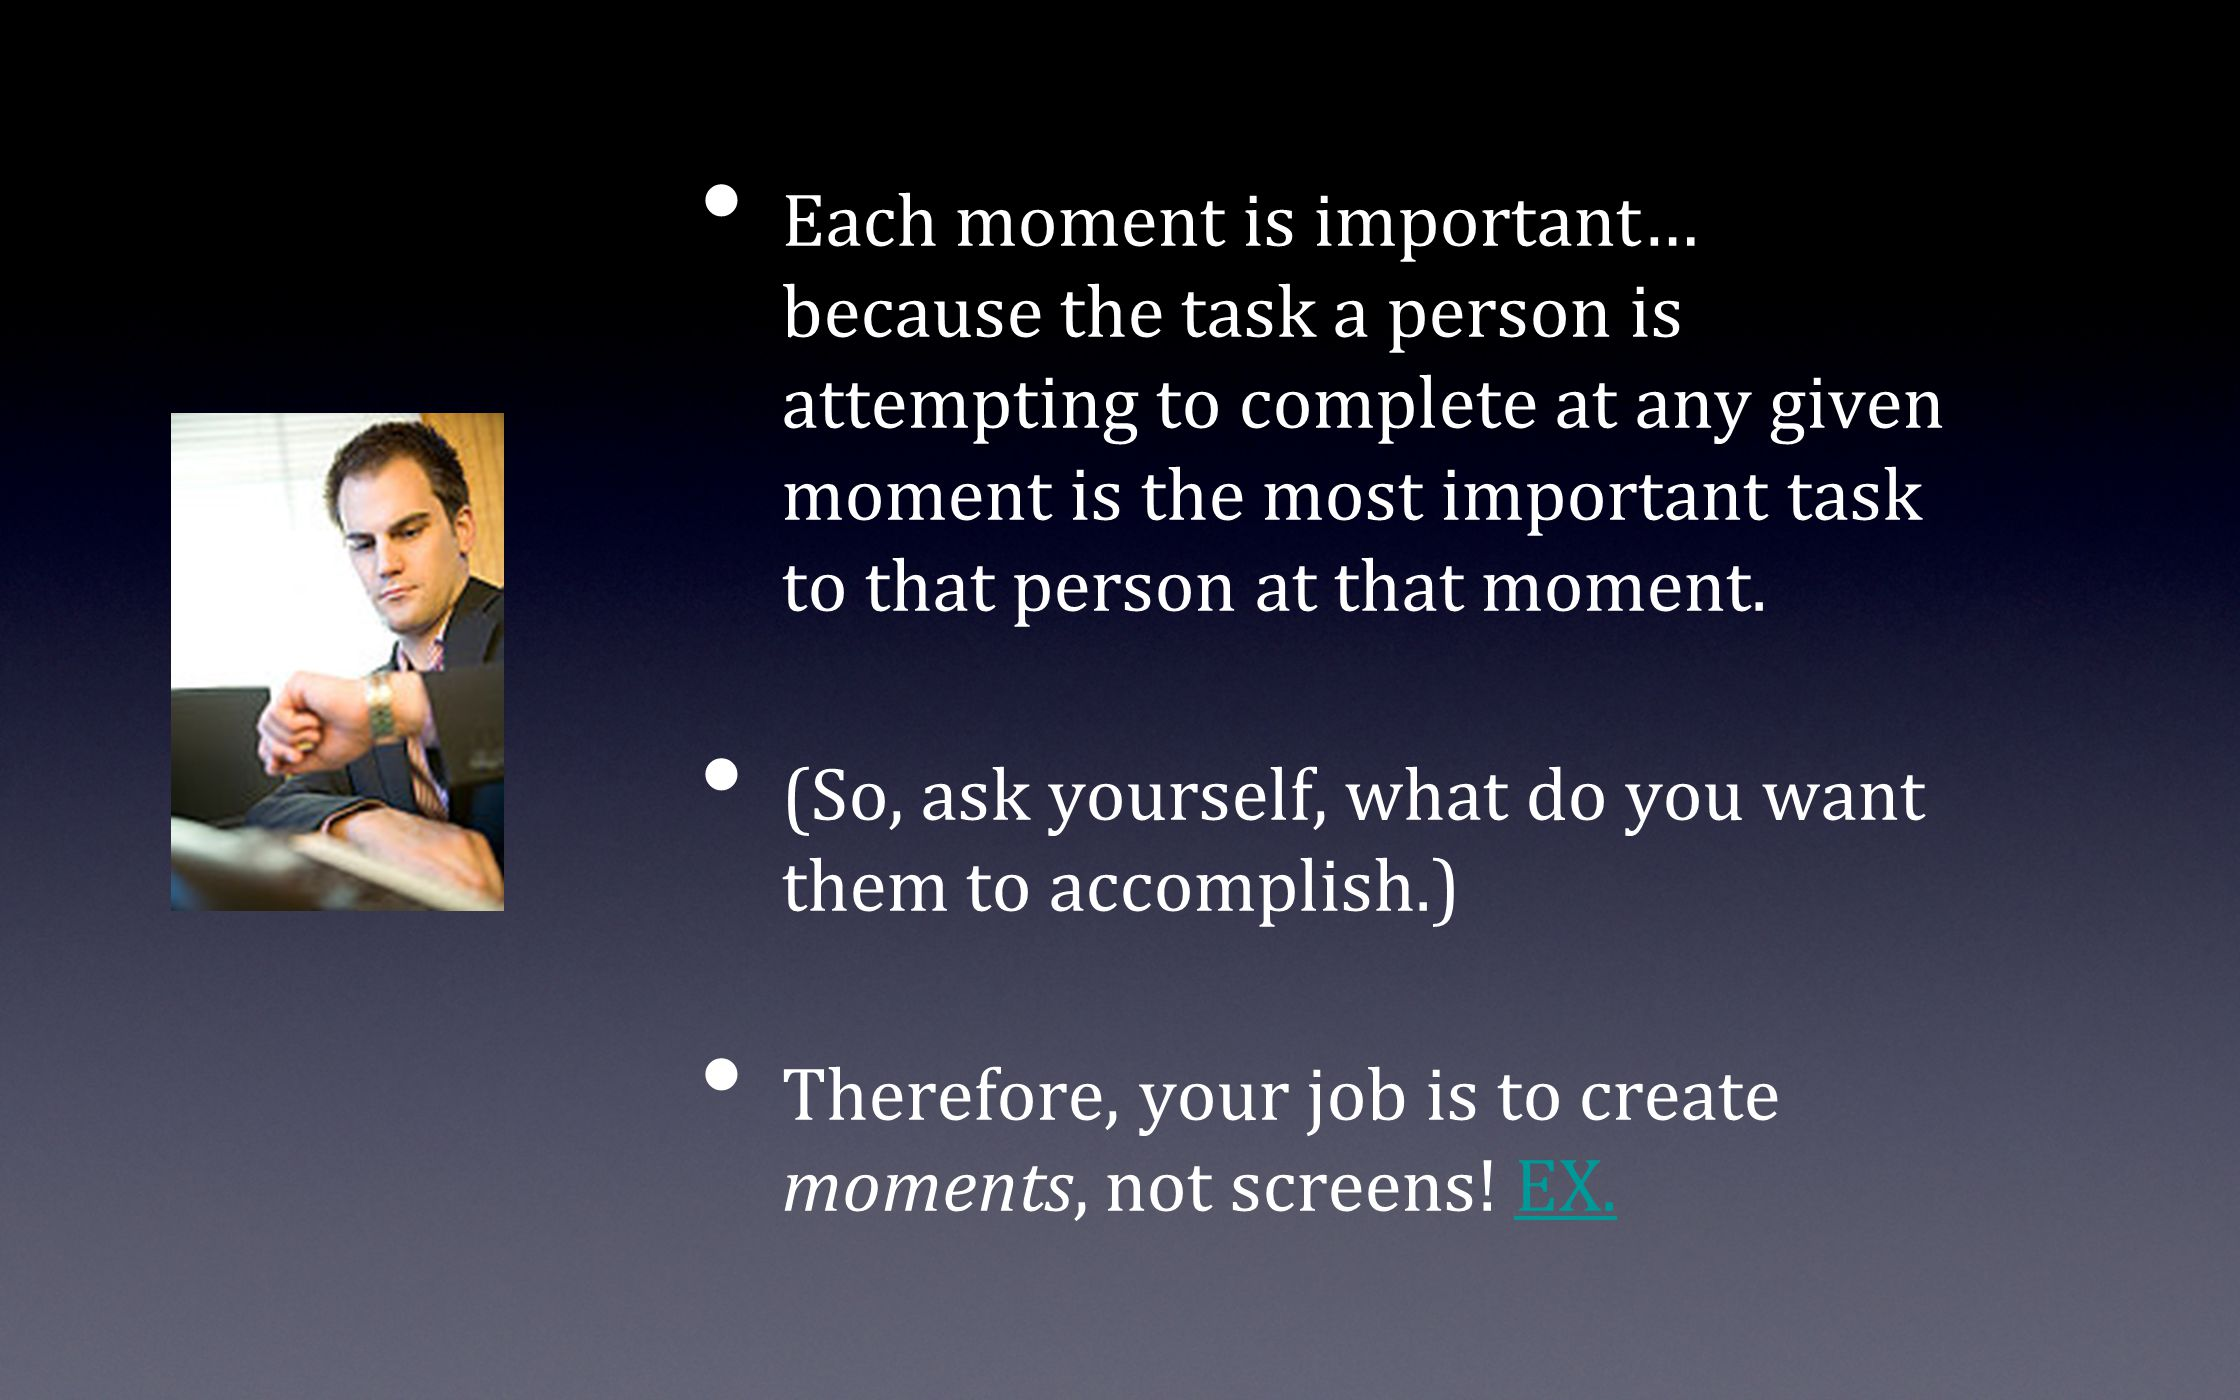 Each moment is important… because the task a person is attempting to complete at any given moment is the most important task to that person at that moment.